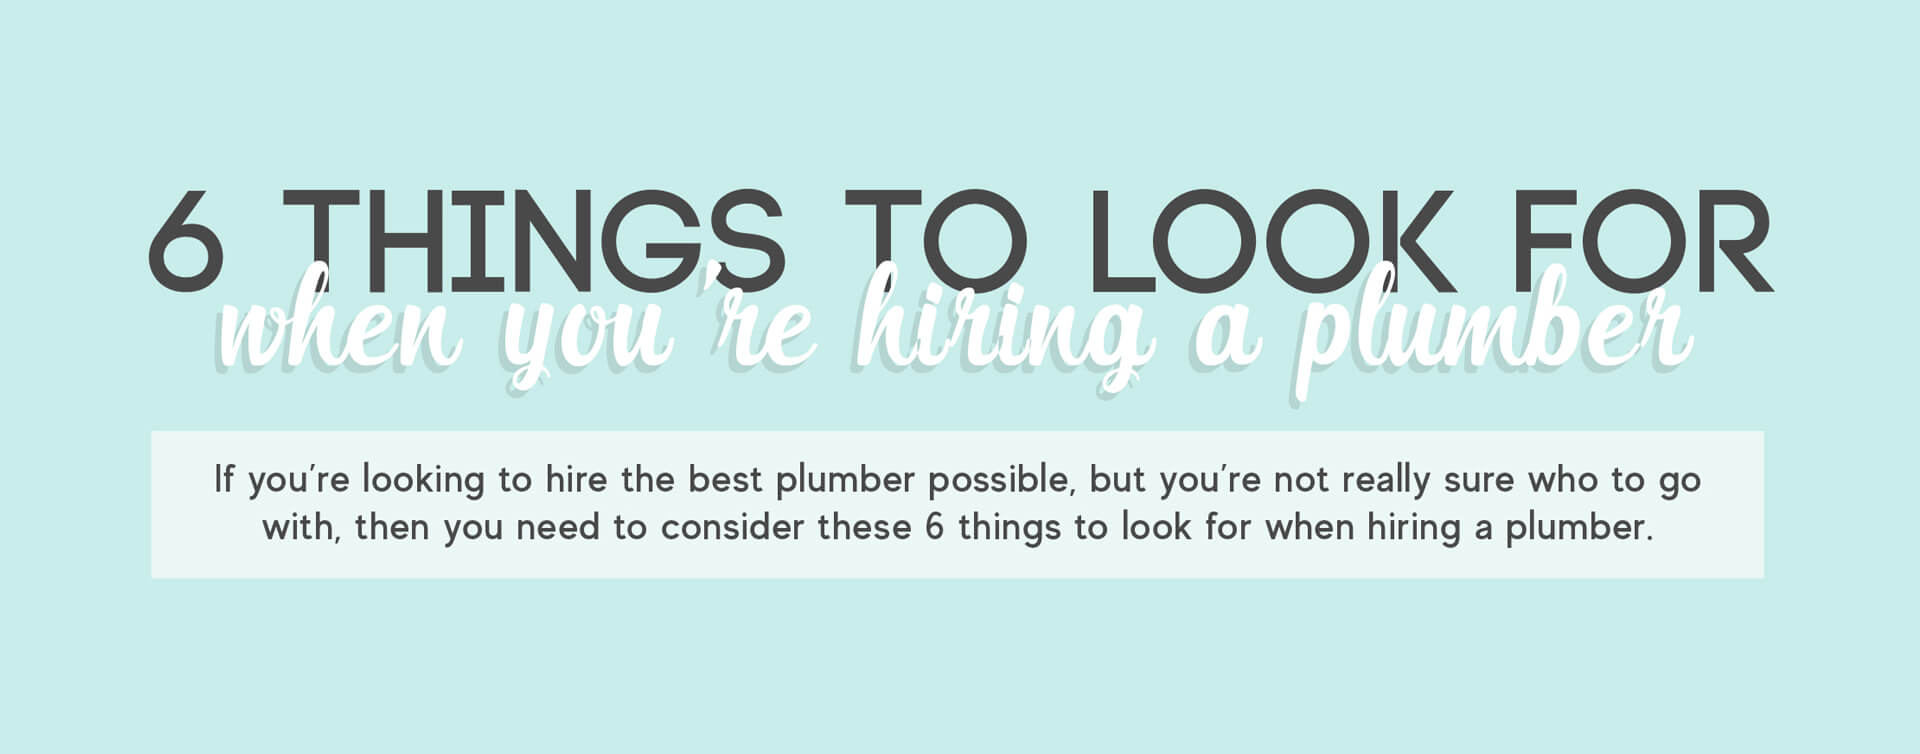 6 things to look for when hiring a plumber banner